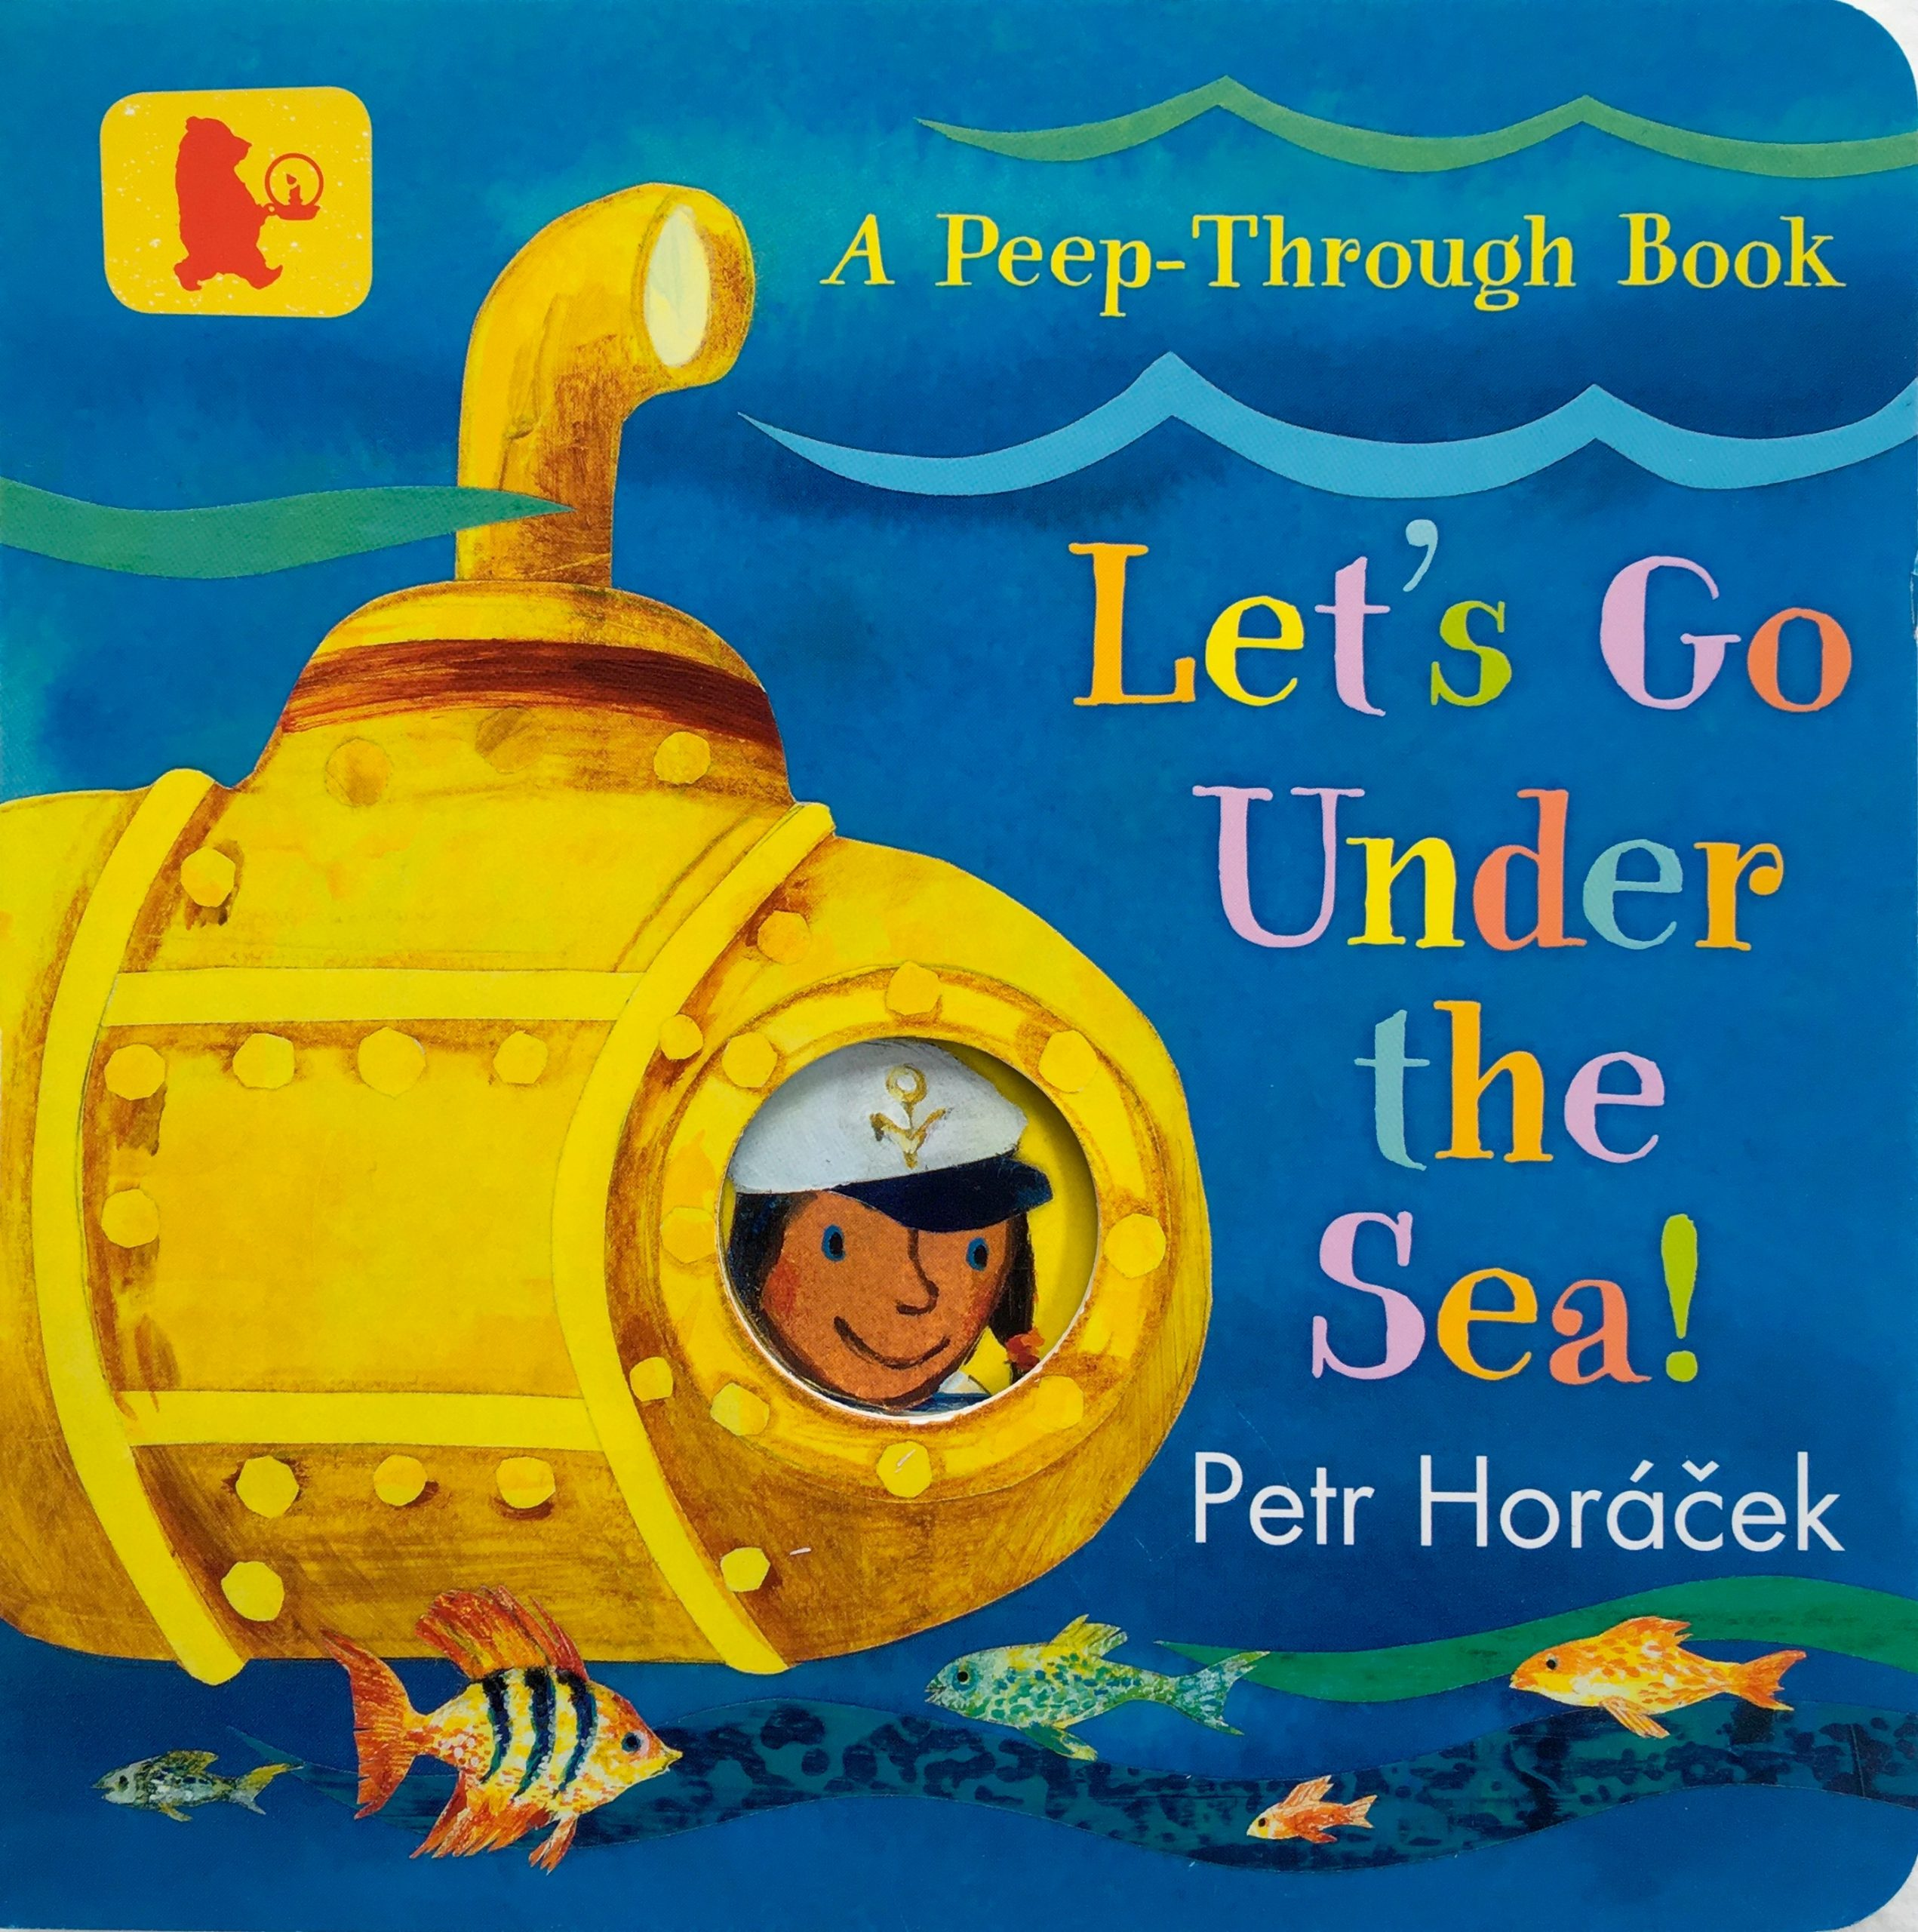 Let's Go Under the Sea